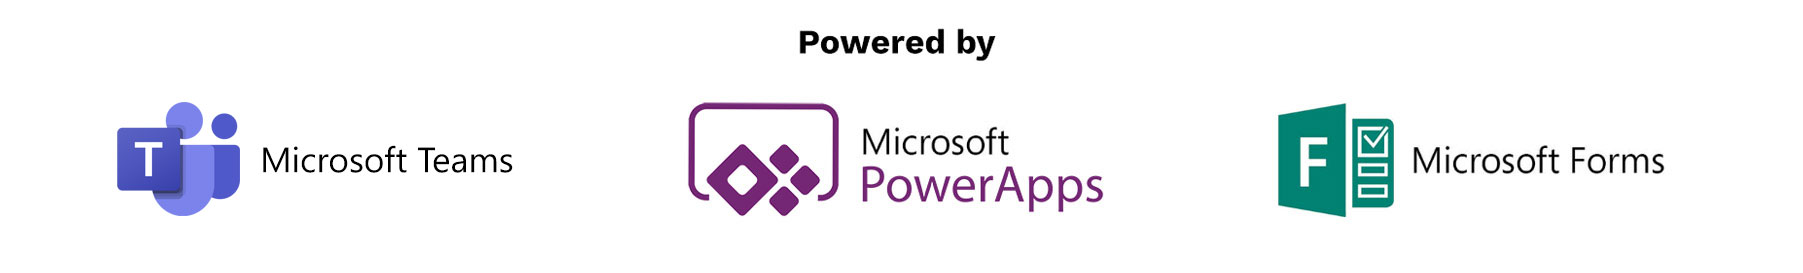 Digital Culture powered by Microsoft Teams, Power Apps & Forms